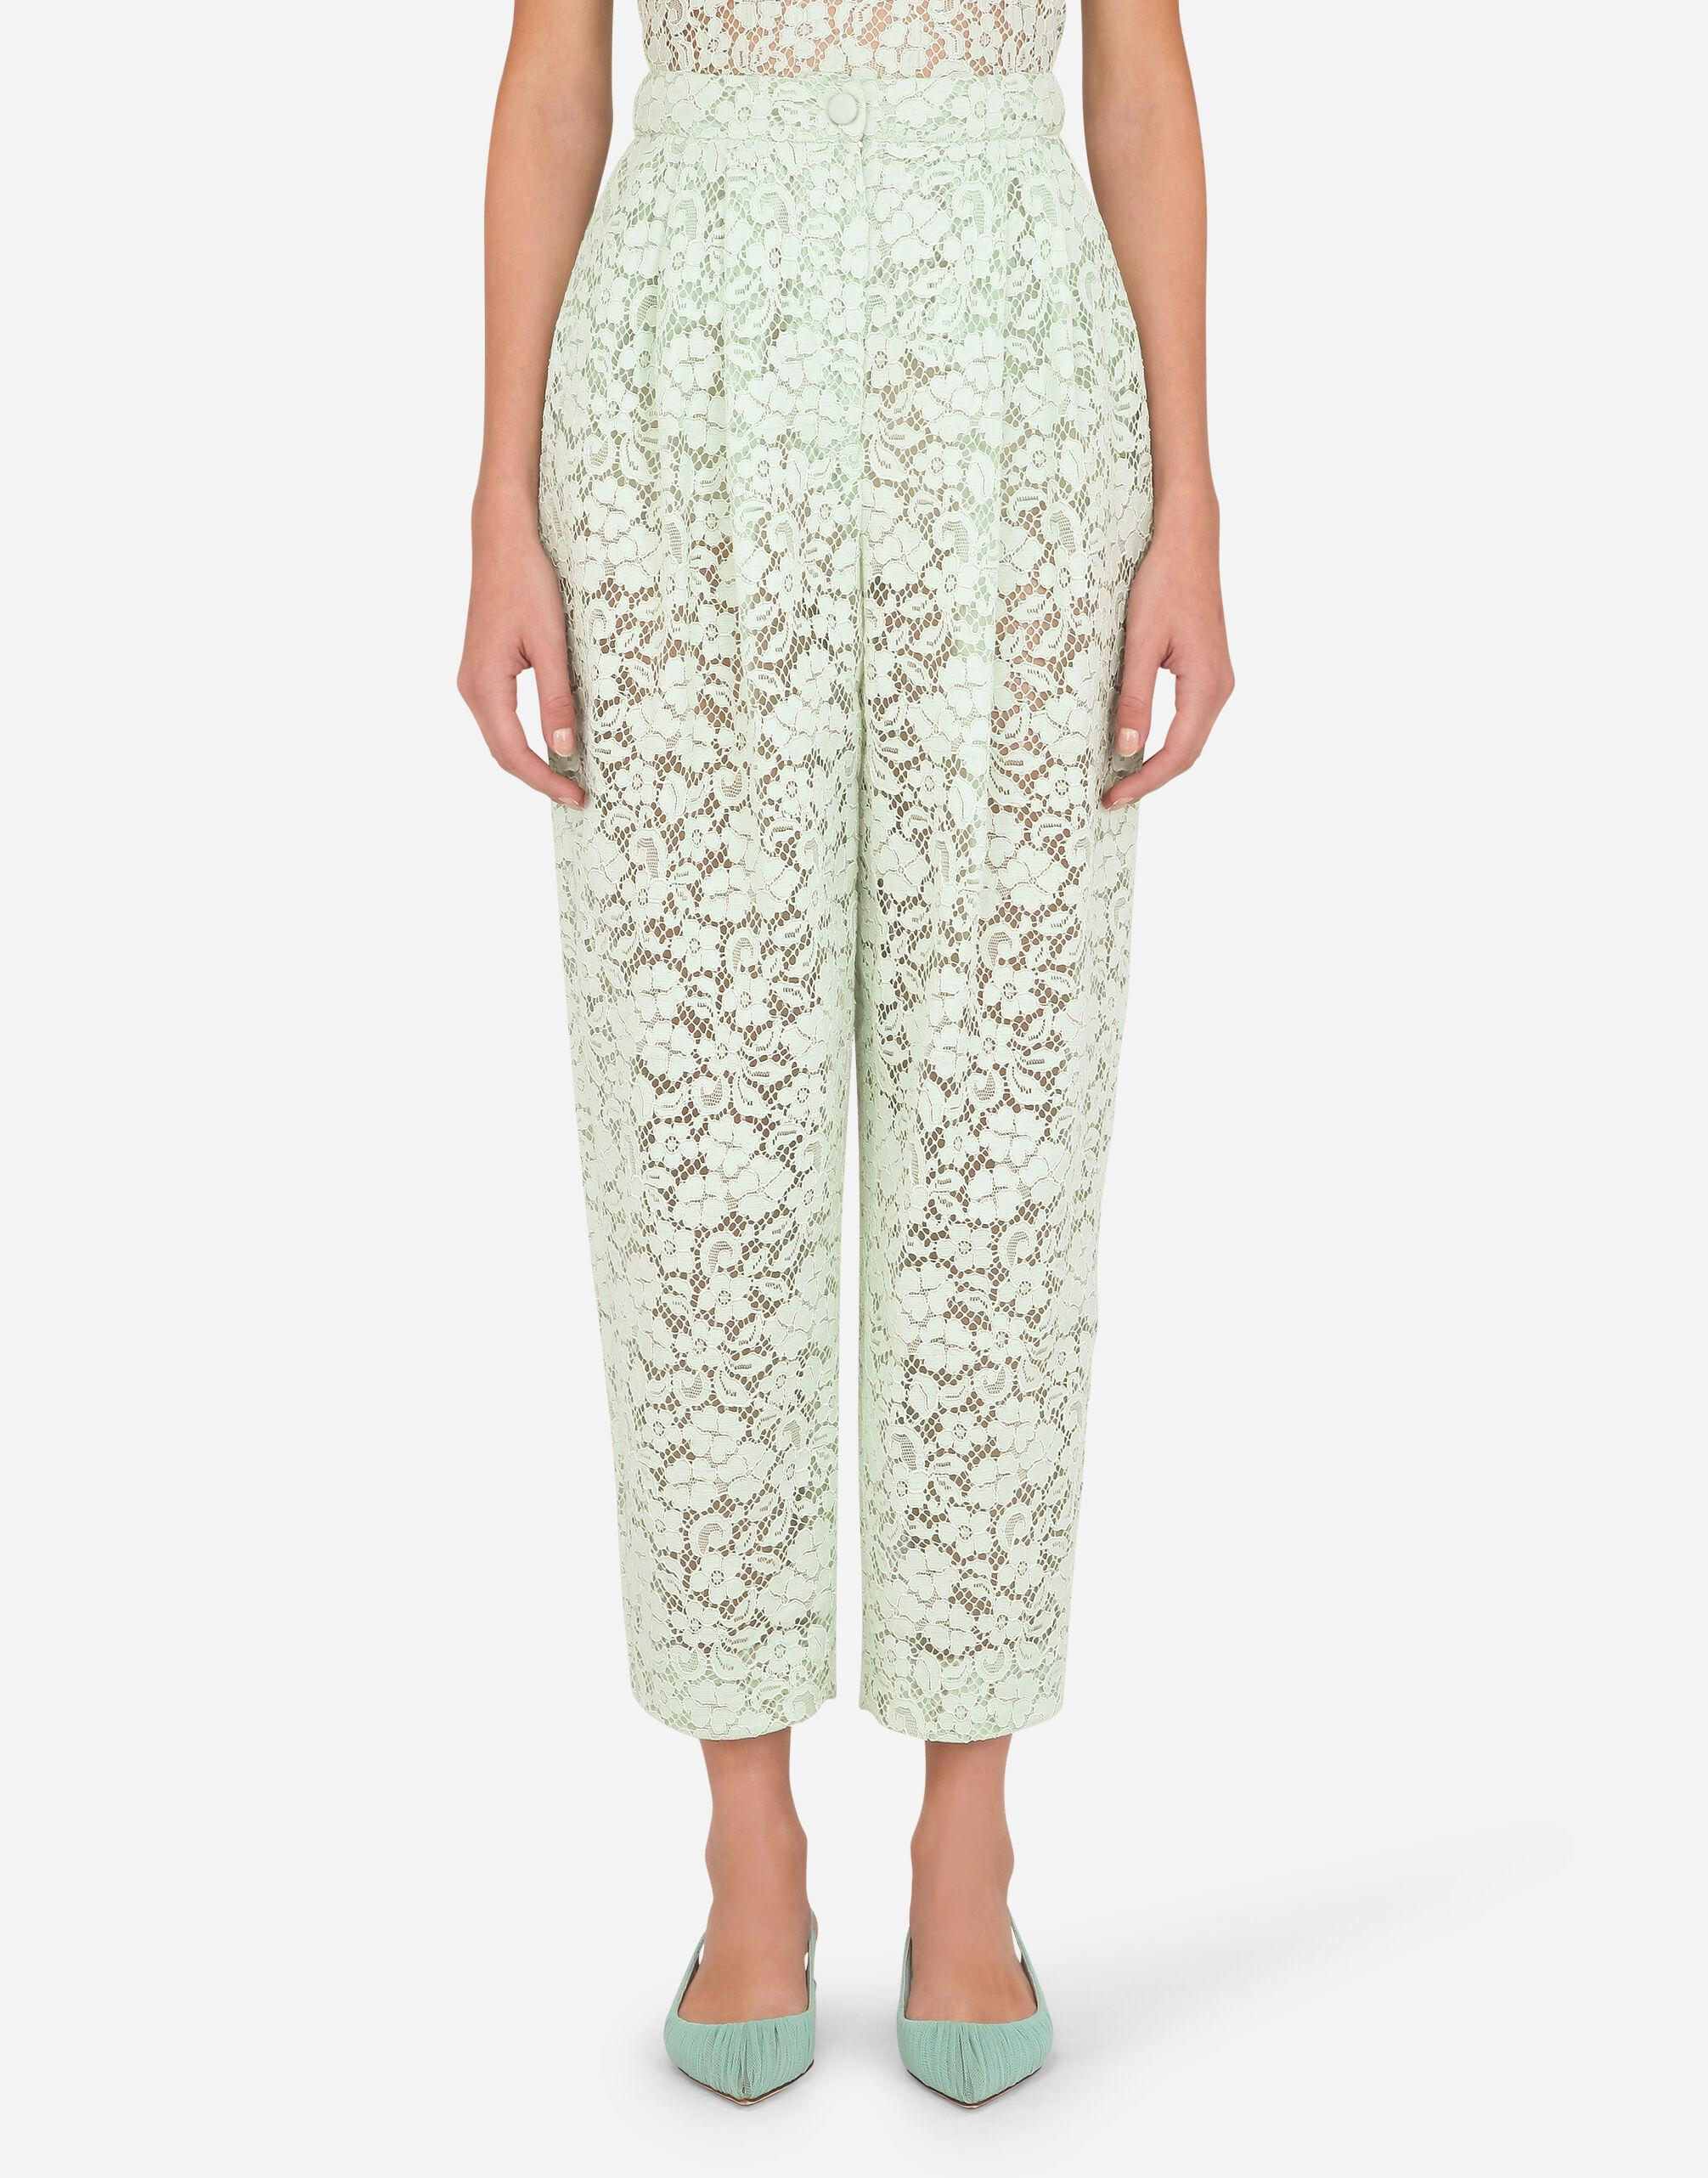 Lace pants with darts